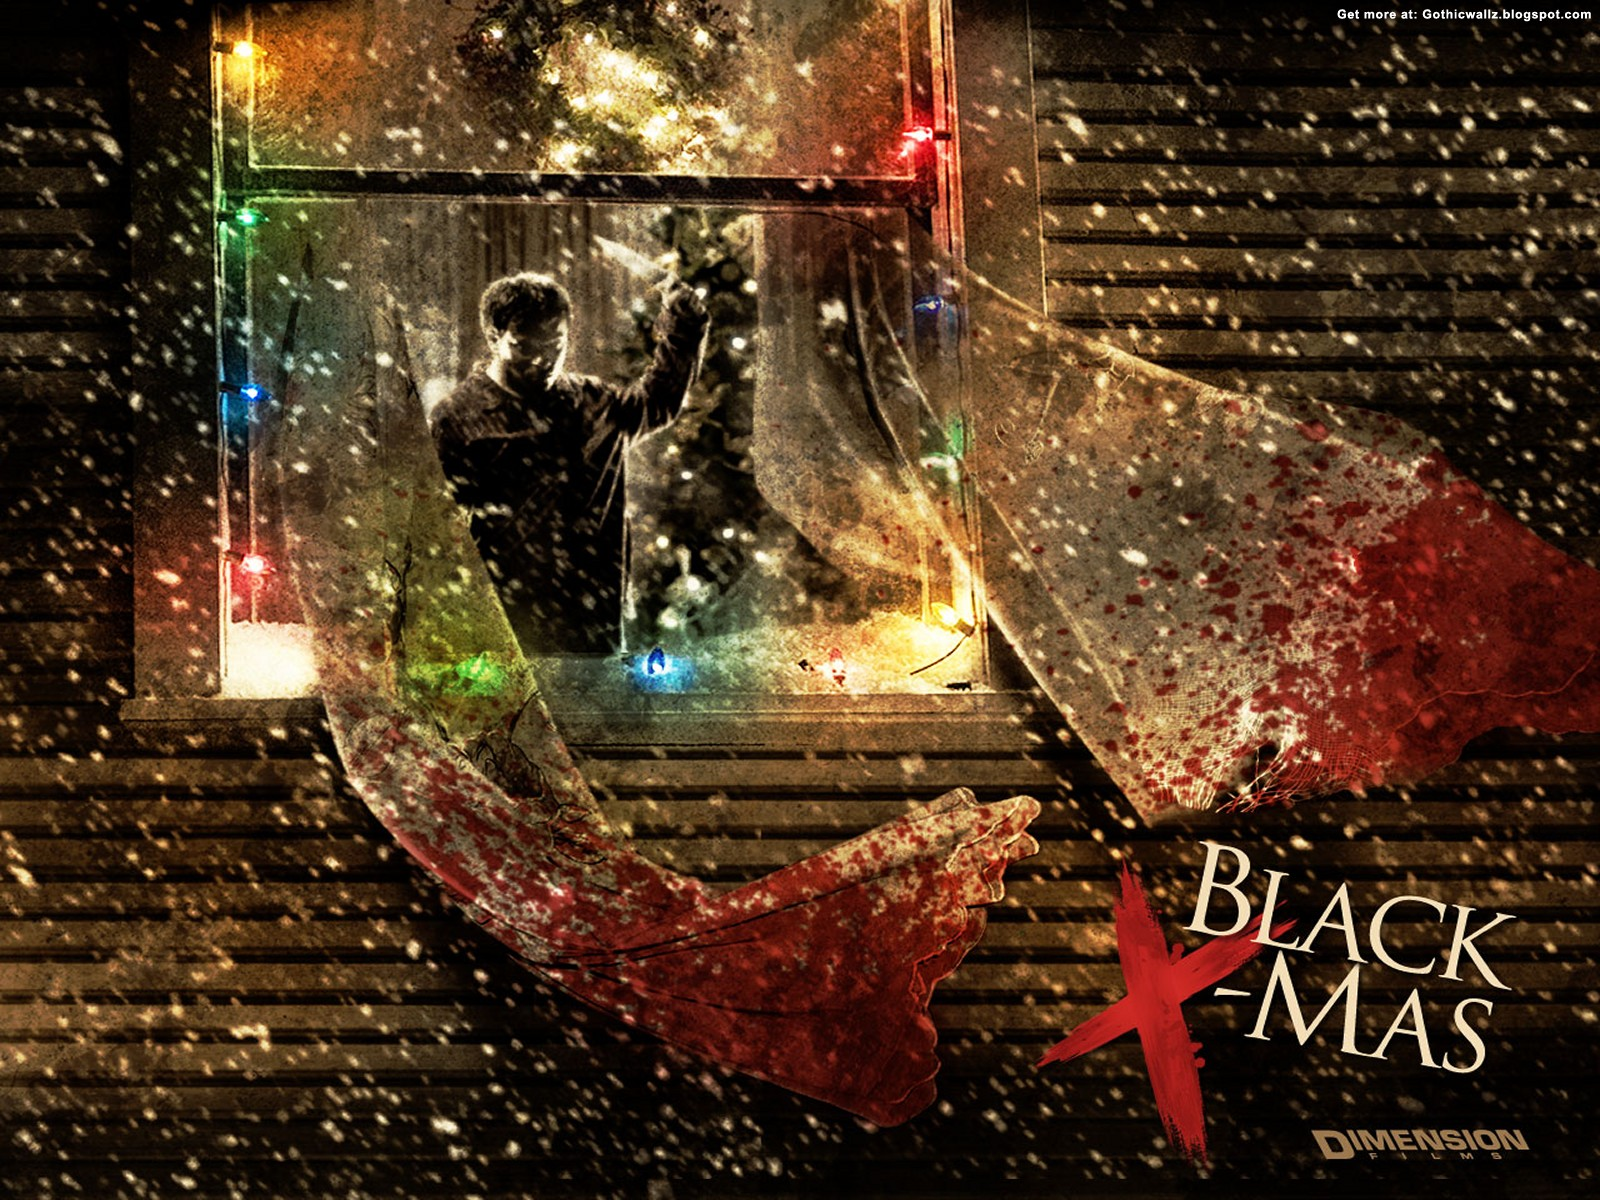 Black Christmas Wallpaper 2 | Gothic Wallpaper Download